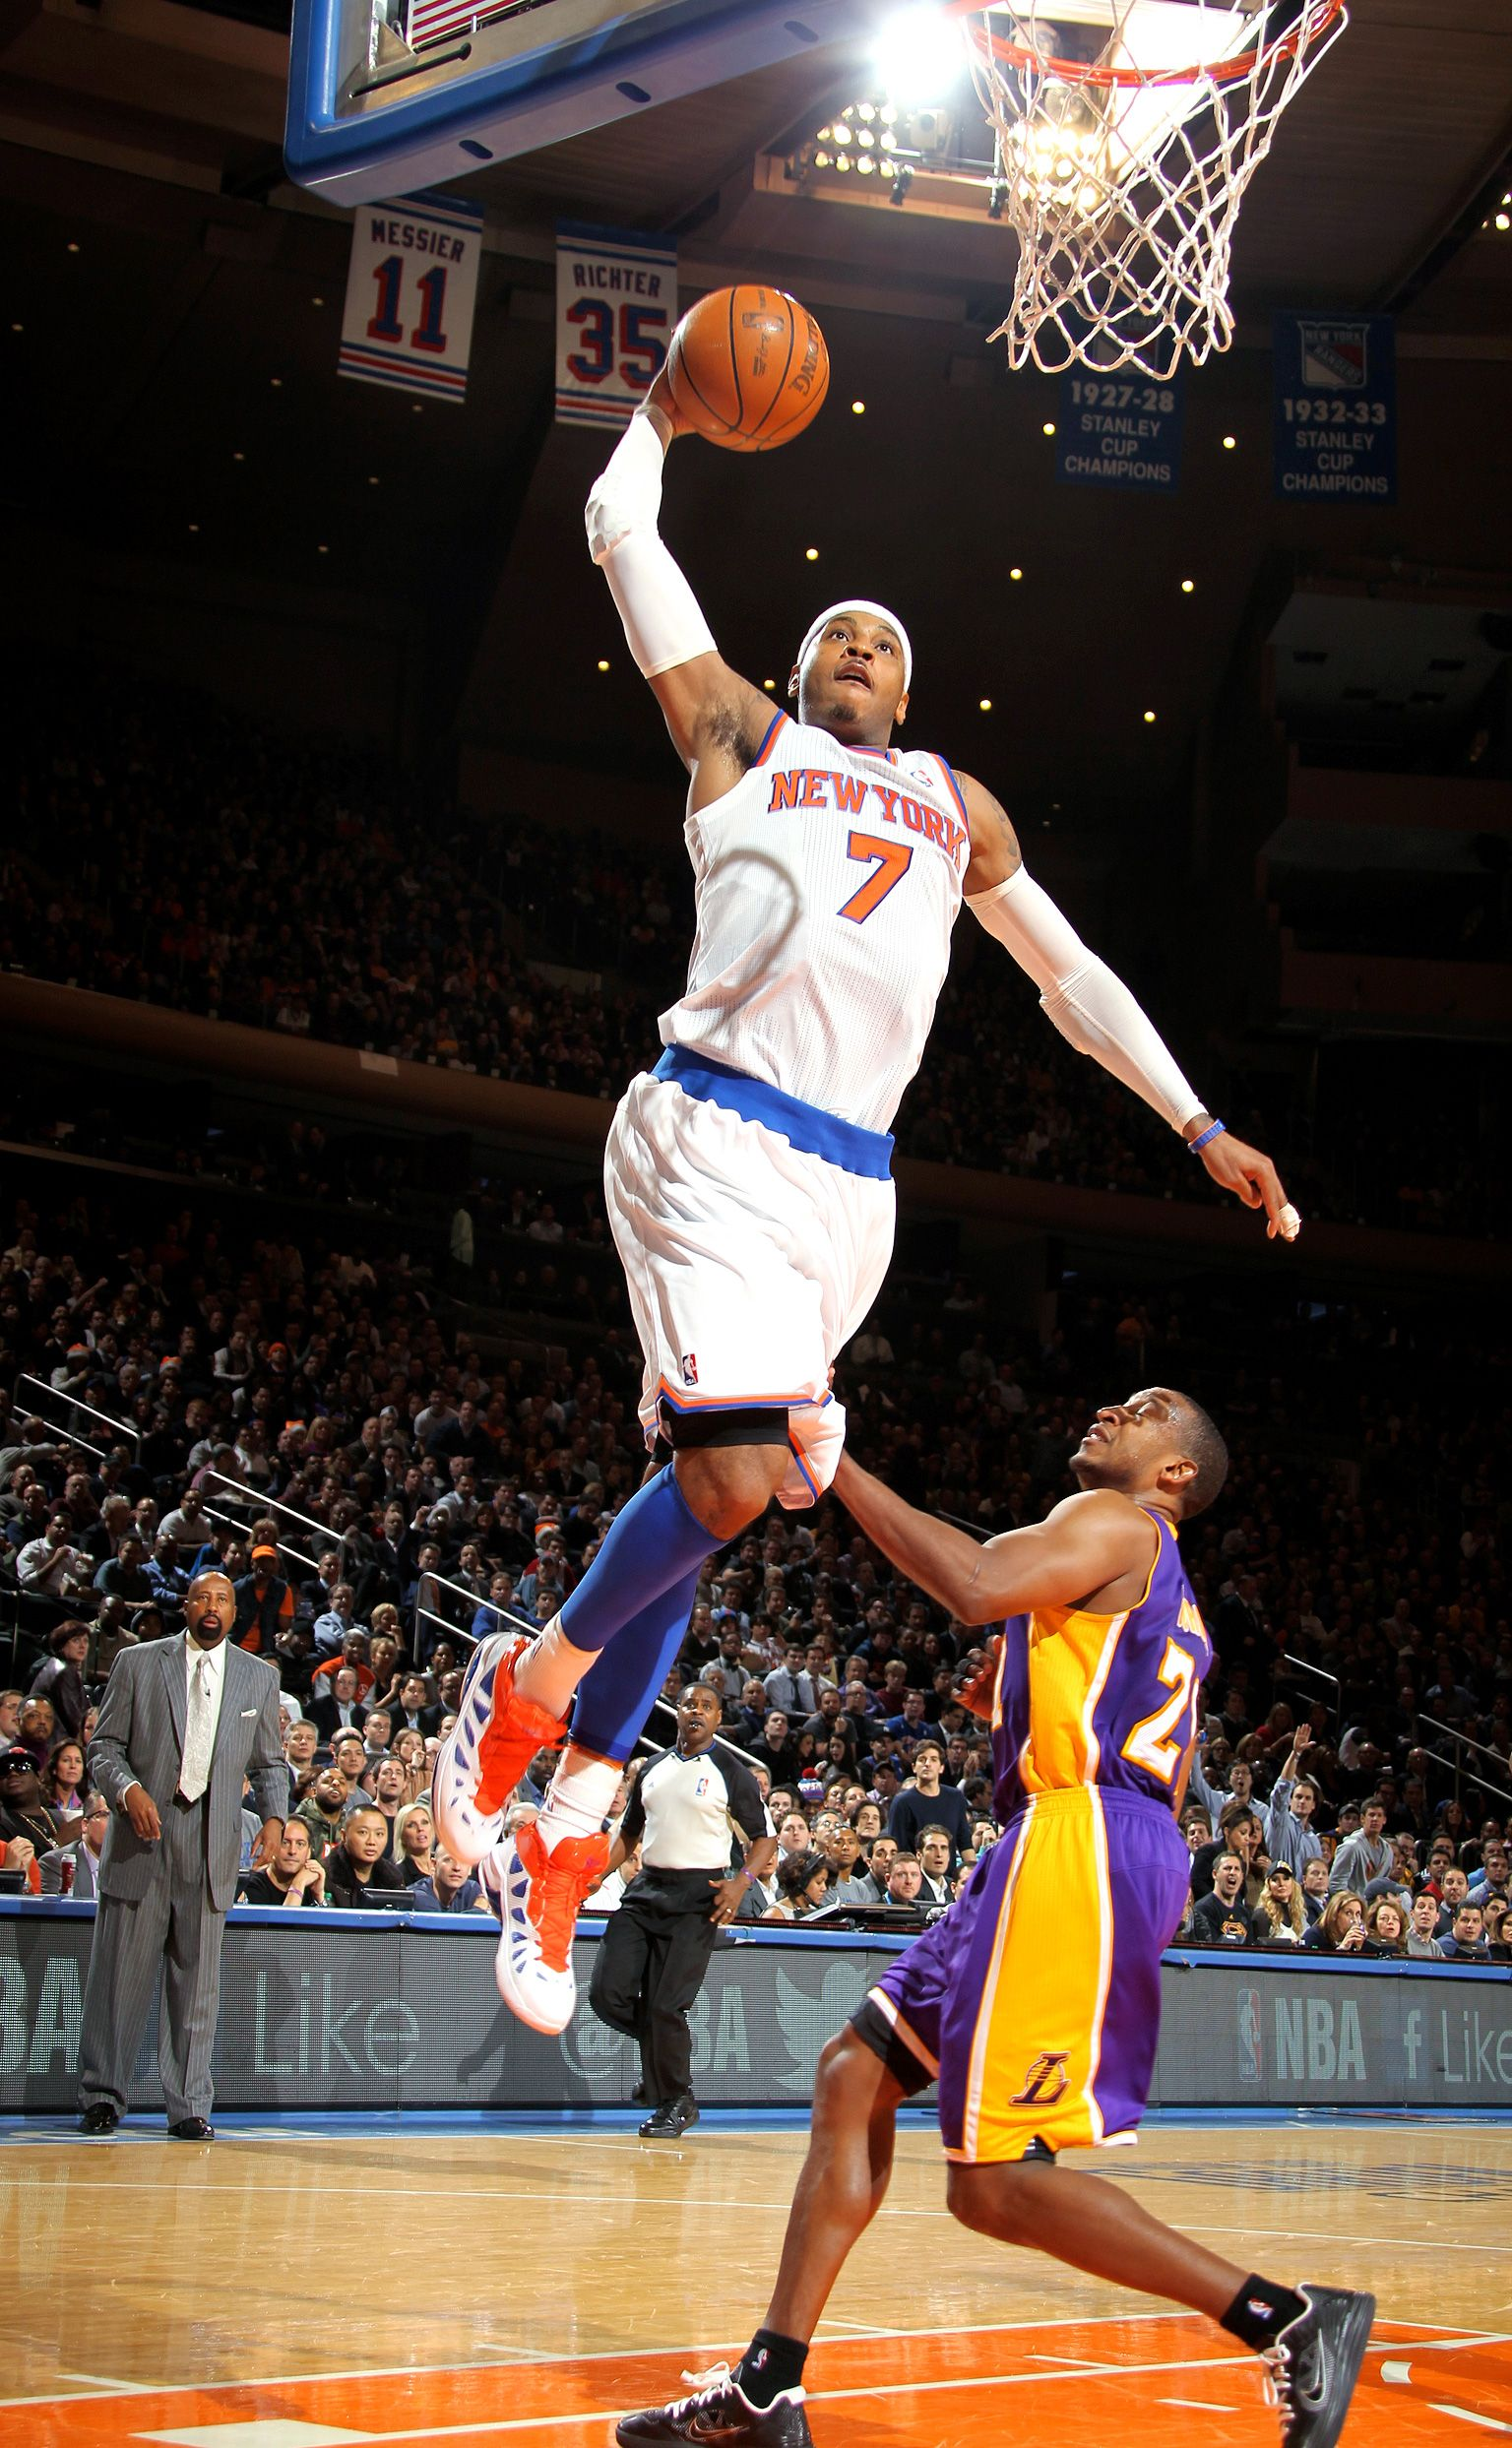 Nba carmelo anthony is in my book razor thin the difference nba carmelo anthony is in my book razor thin the difference between winning voltagebd Images